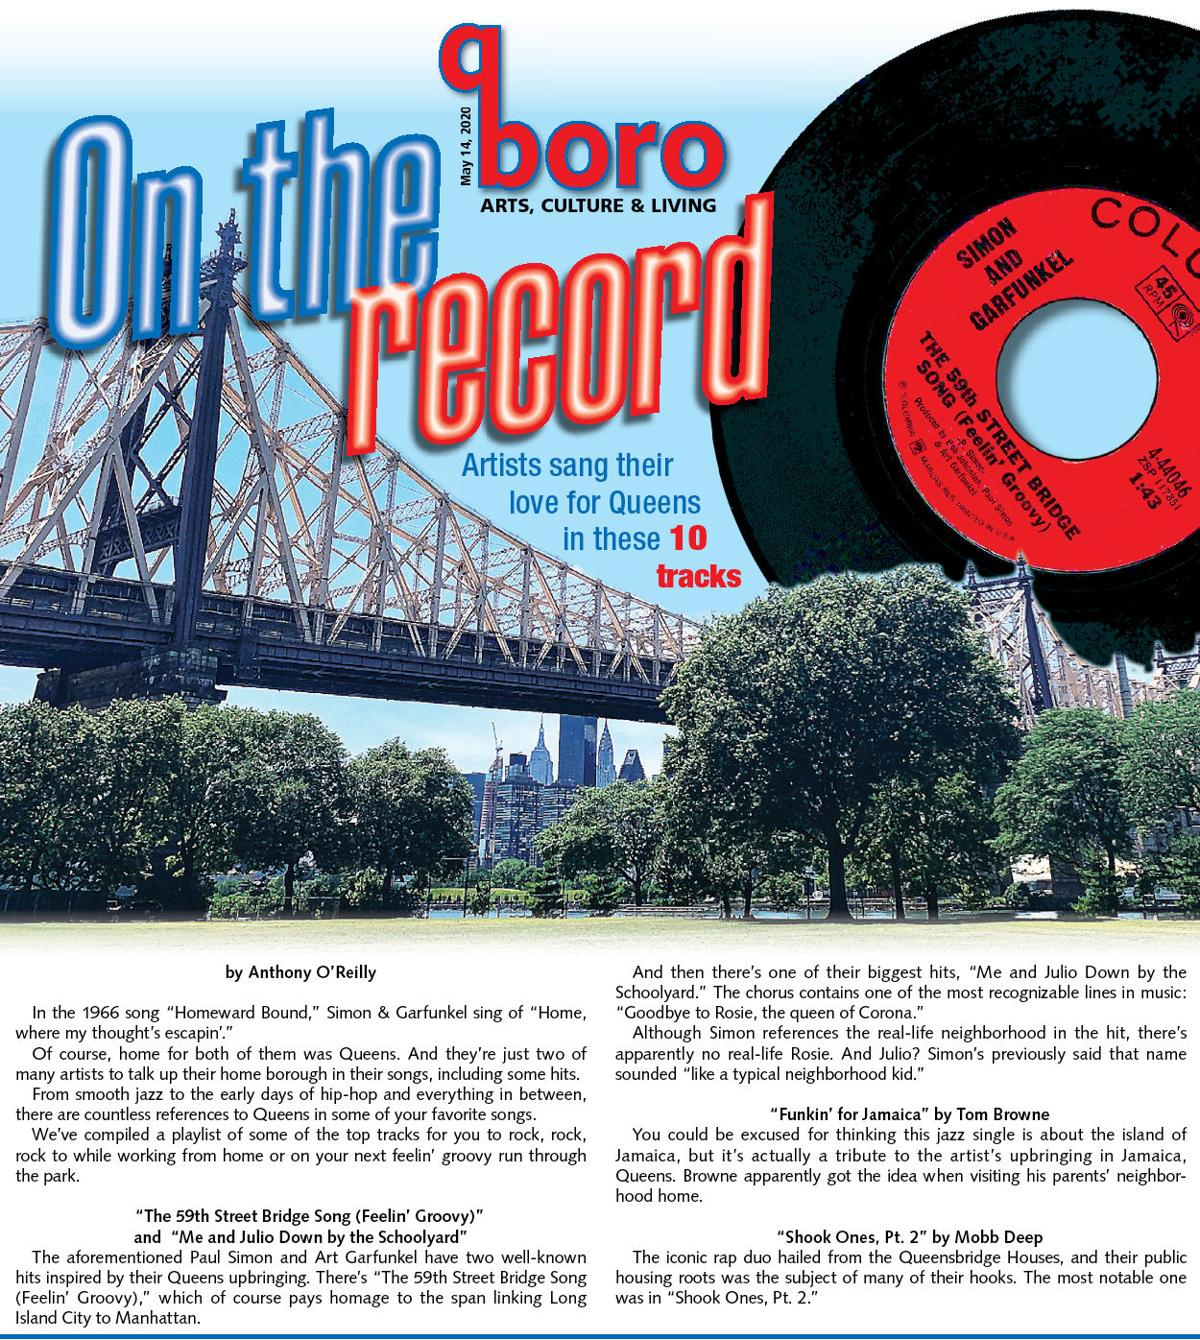 Meet the boys from Queens who rocked the boro 1